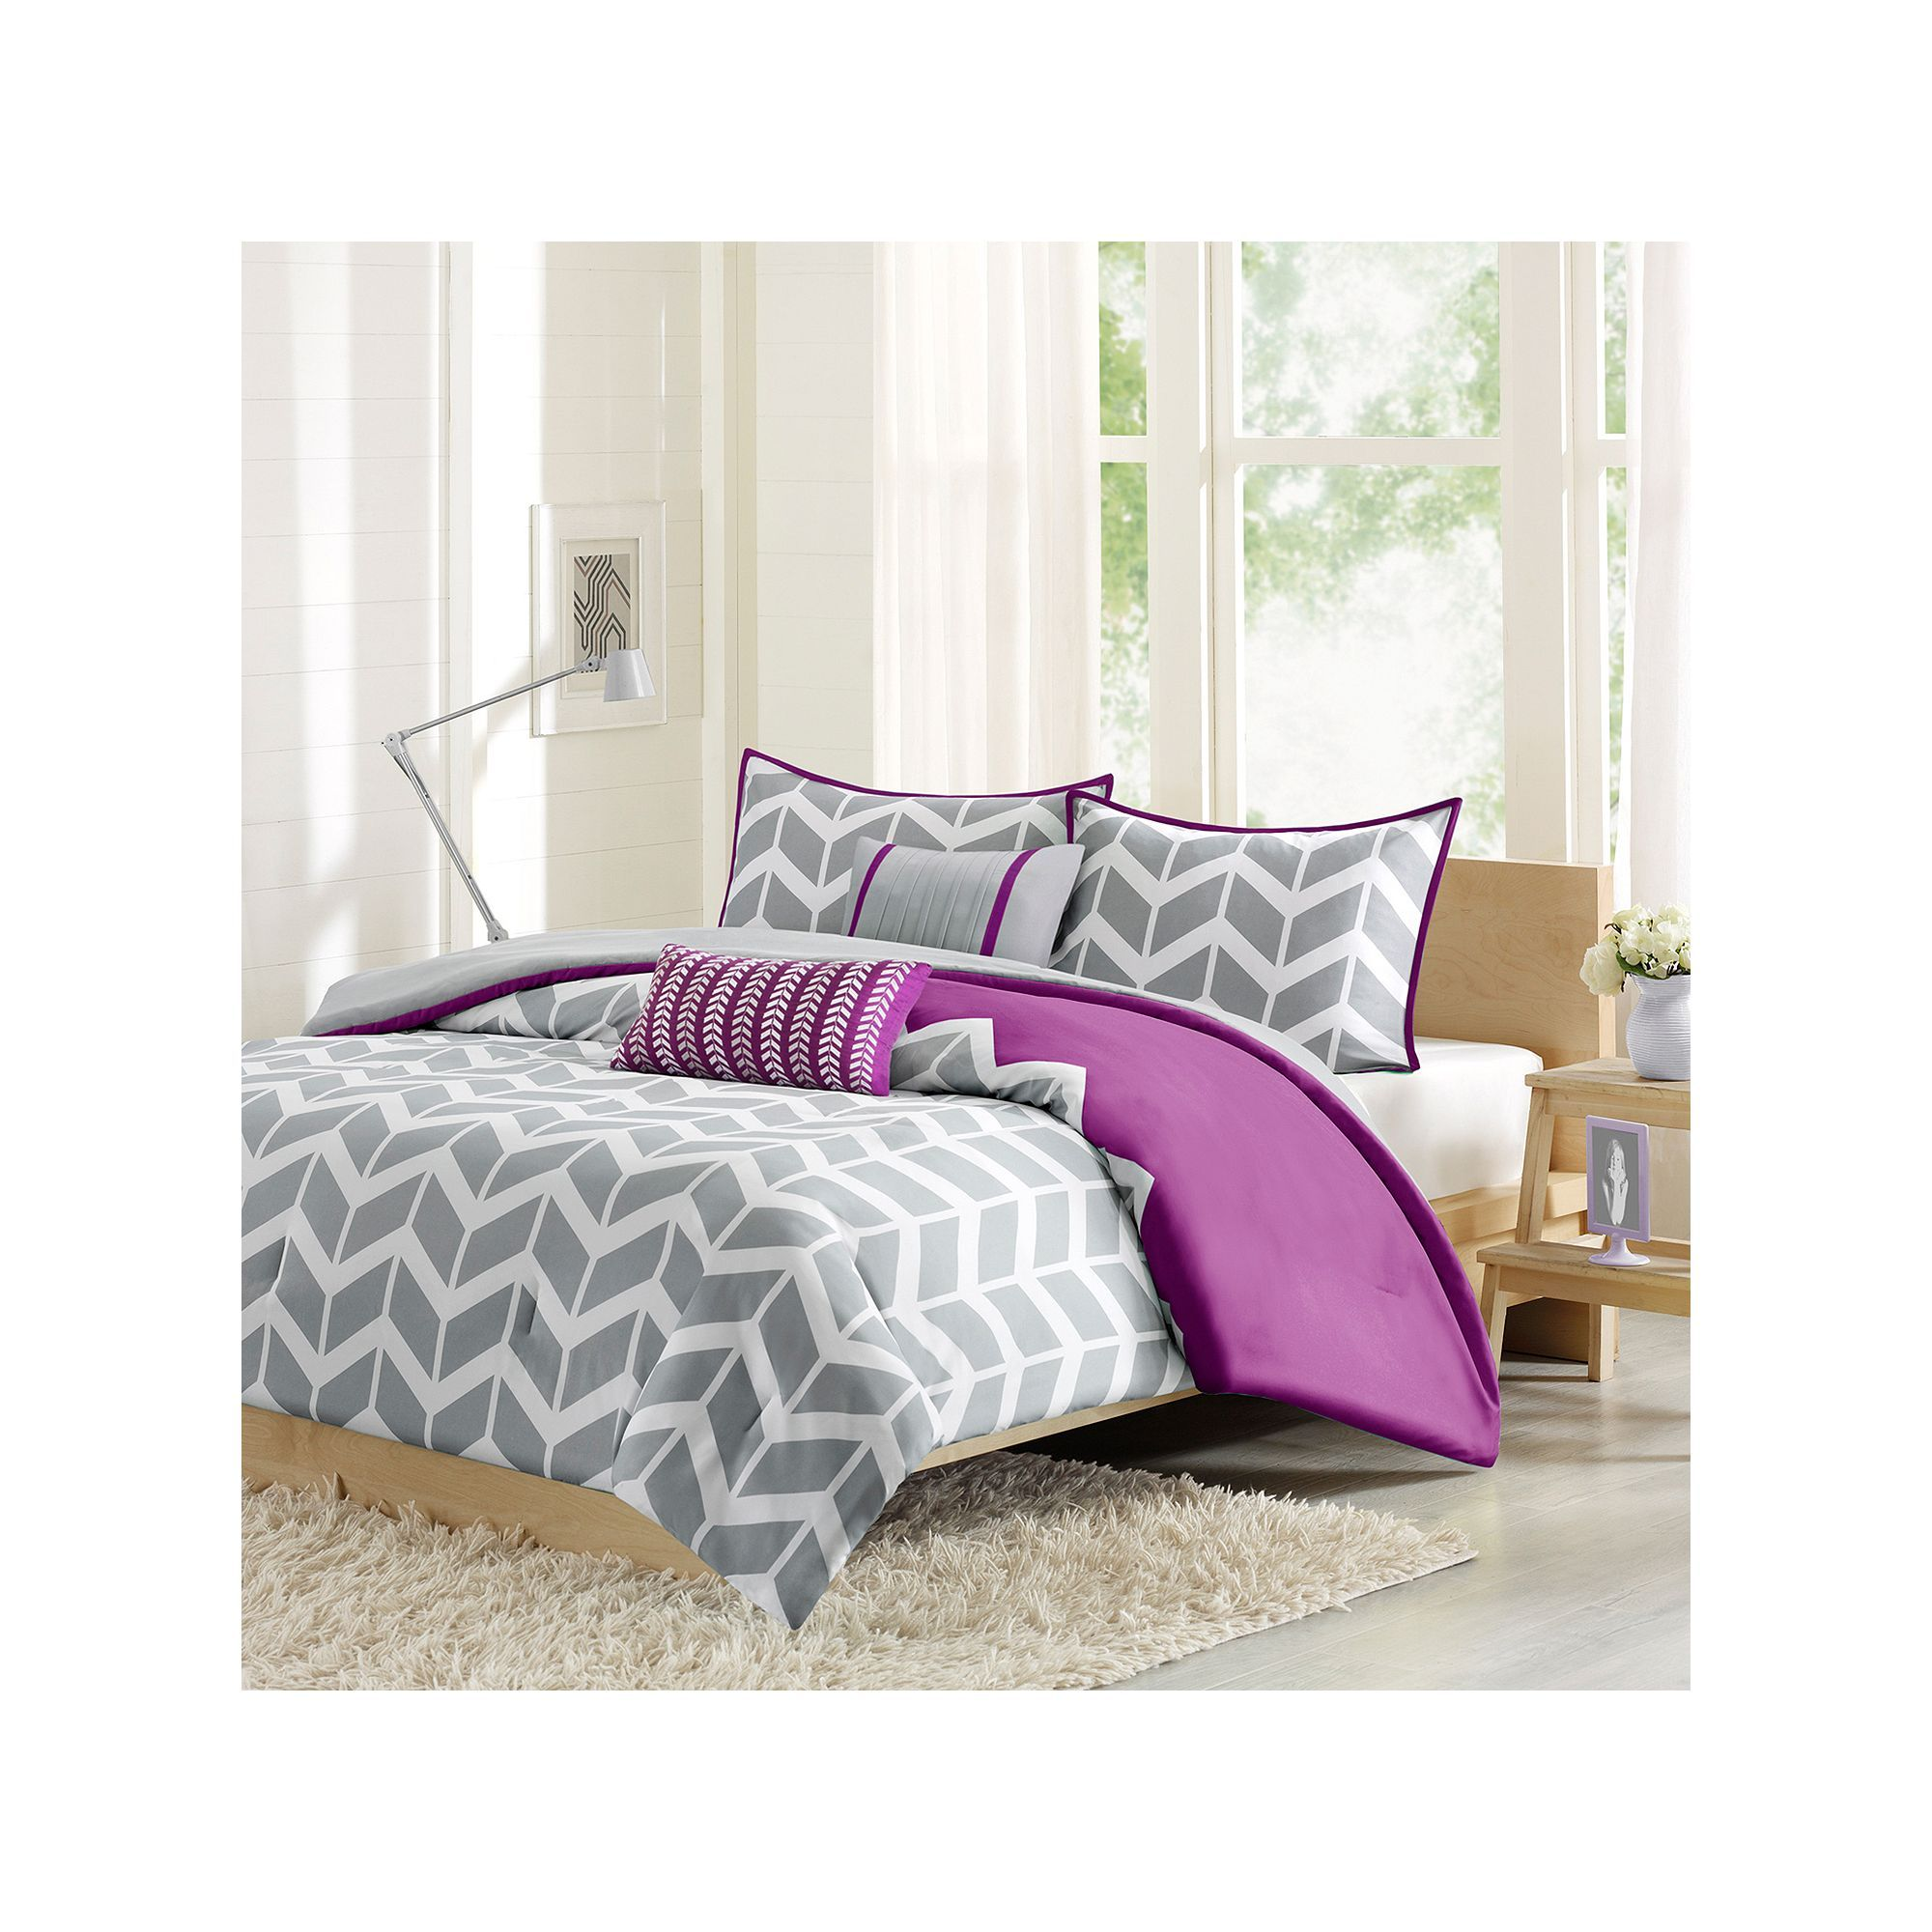 Intelligent Design Peyton Bed Set, Purple